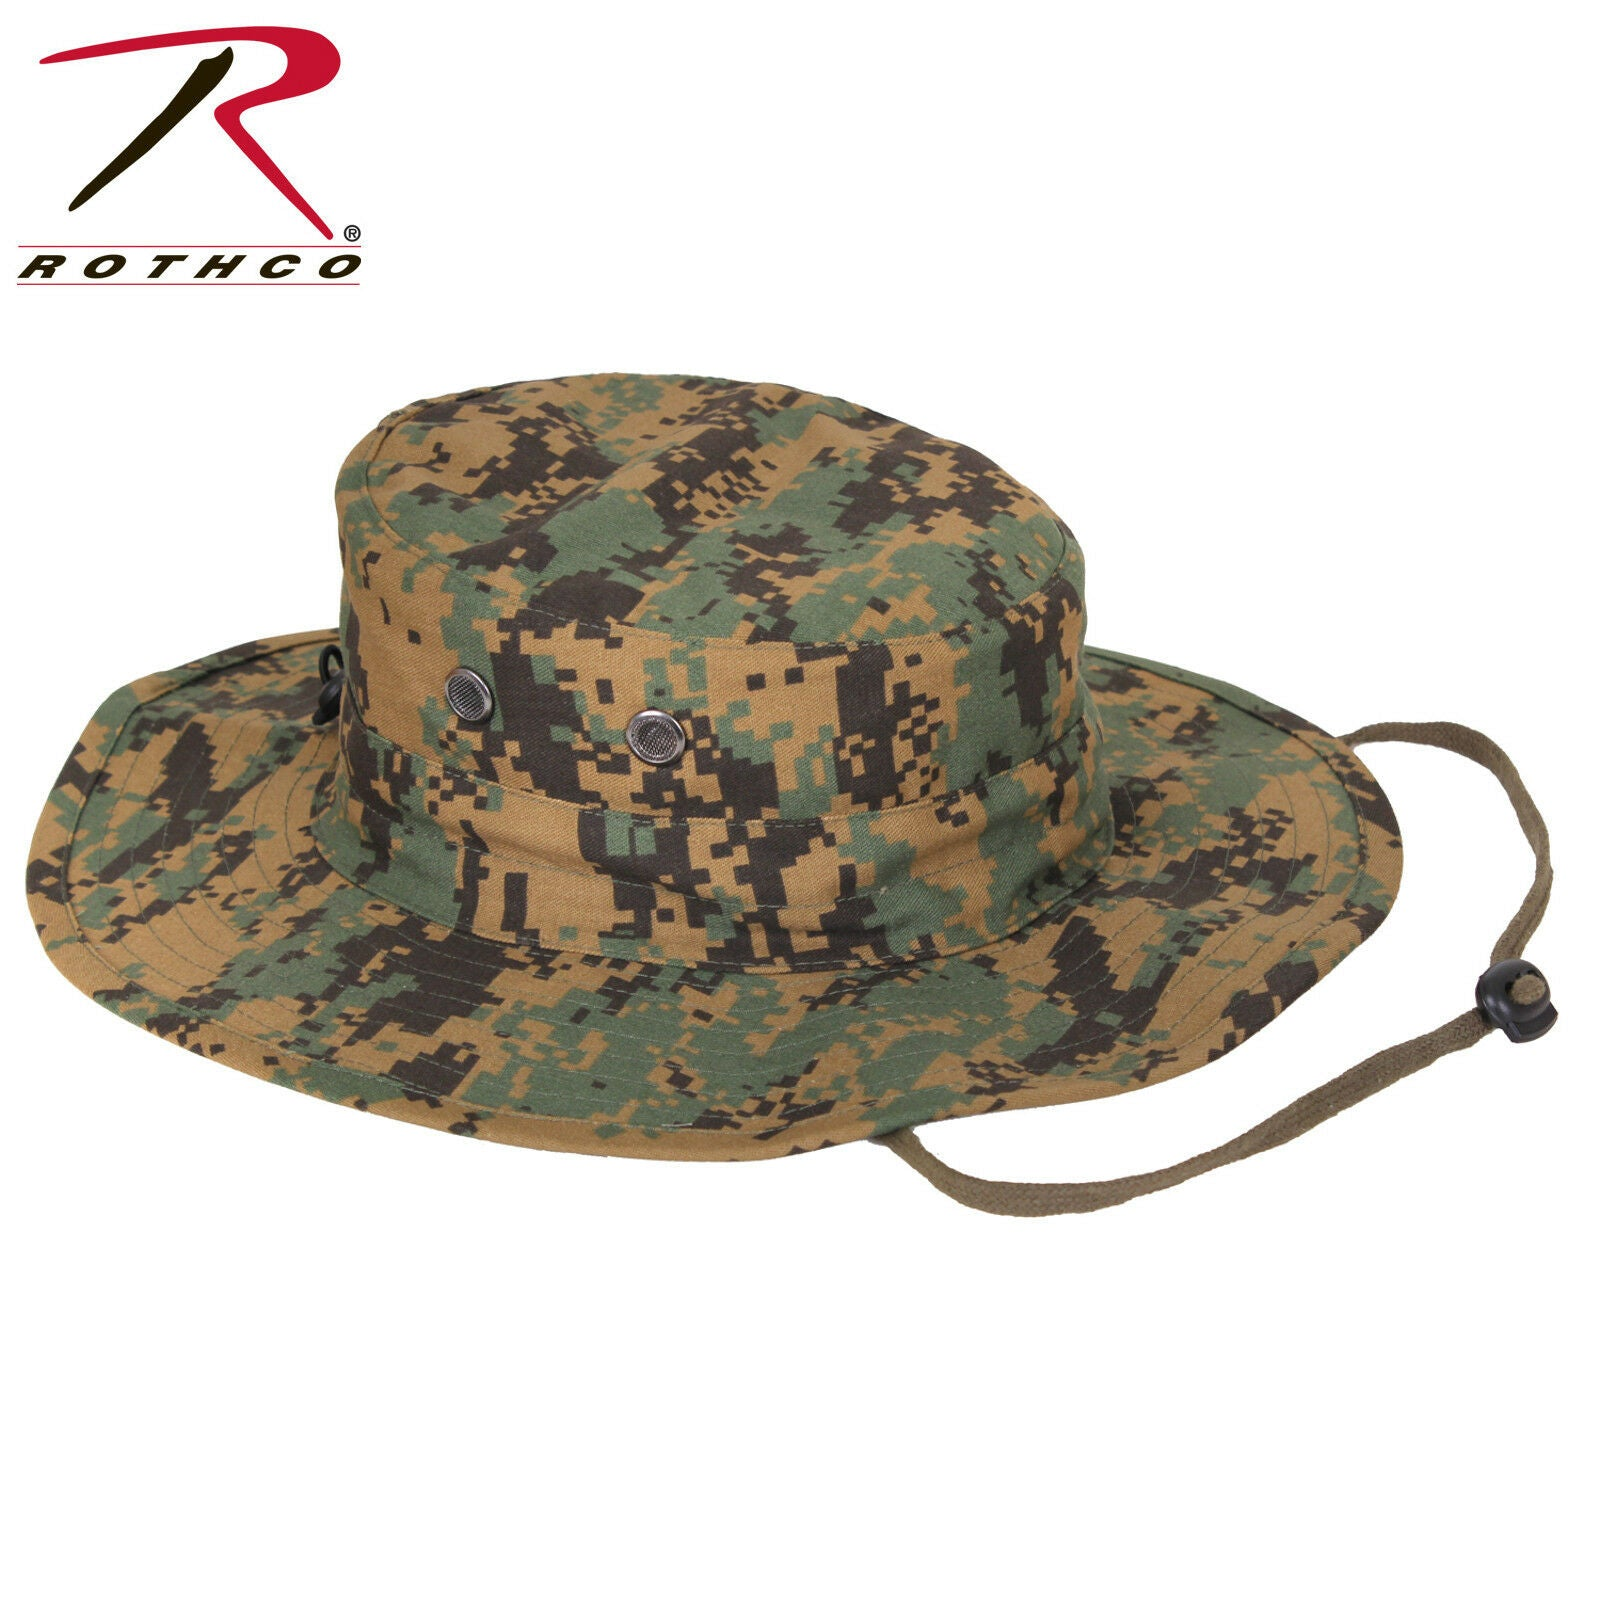 7ba923f249d Rothco Woodland Digital Adjustable Boonie Hat - Military Style Bucket Hat  OSFM. Zoom. Move your mouse over image or click to enlarge